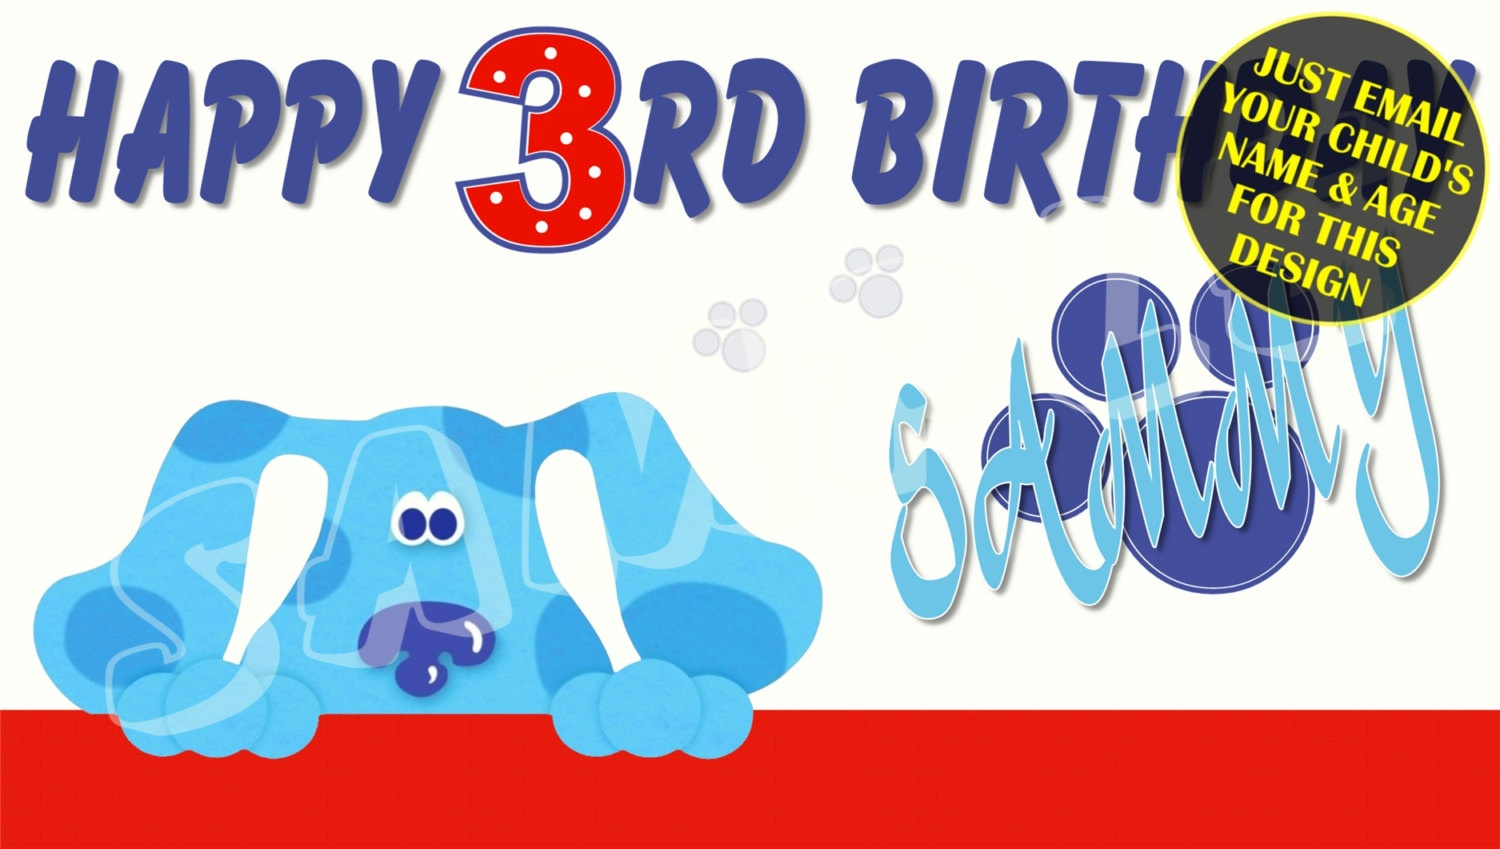 Blues Clues Personalized Birthday Banner With Free Printable | Etsy - Free Printable Birthday Banners Personalized